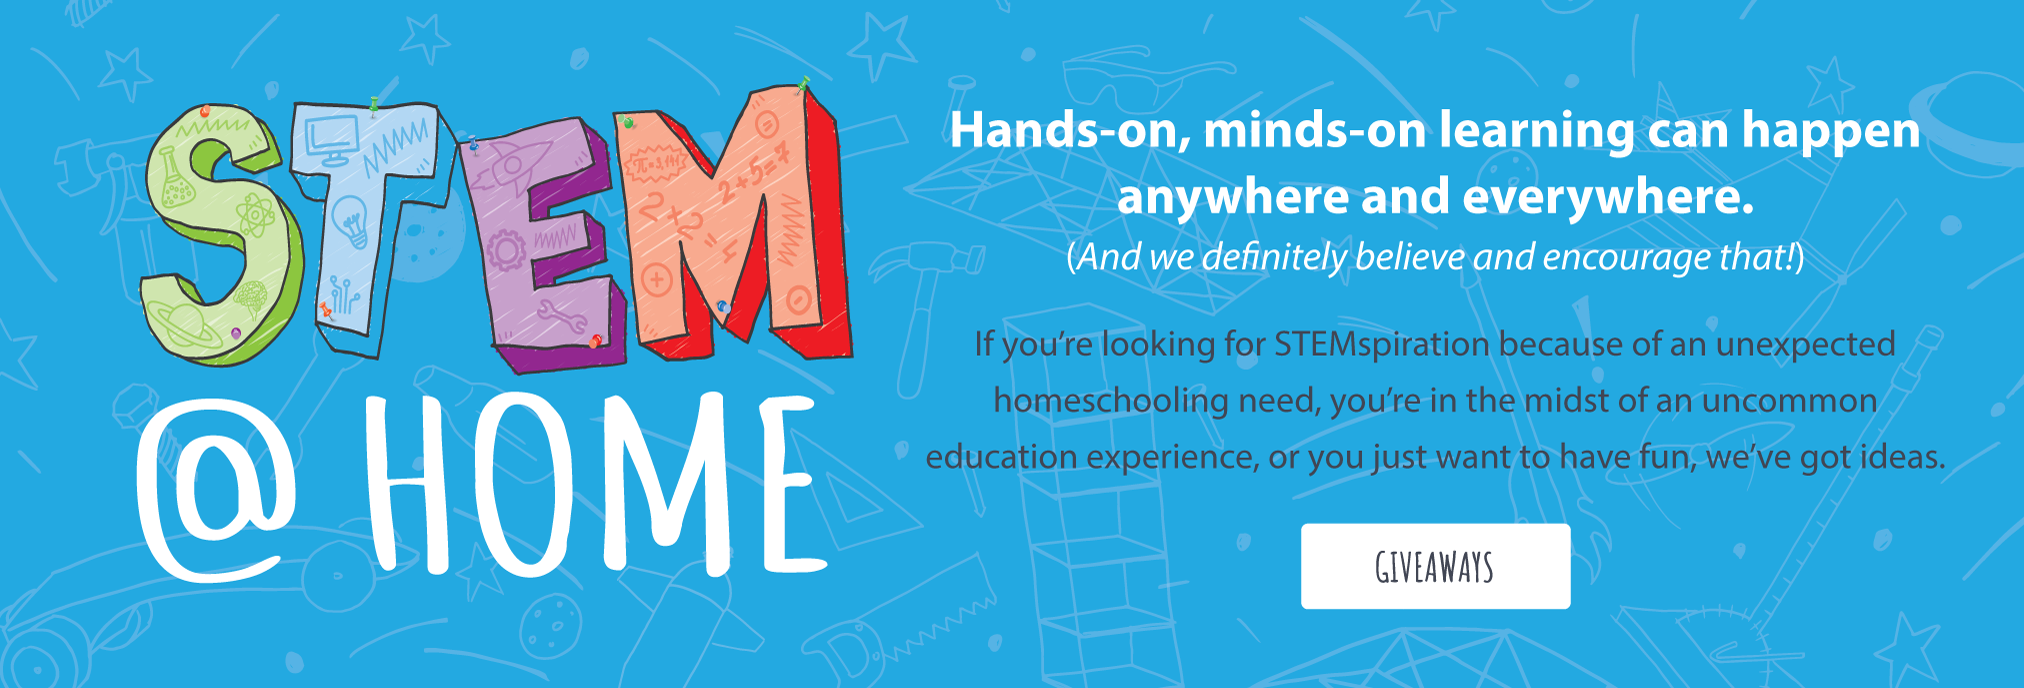 STEM @ HOME – Hands-on, minds-on learning can happen anywhere and everywhere. (And we definitely believe and encourage that!) If you're looking for STEMspiration because of an unexpected homeschooling need, you're in the midst of an uncommon education experience, or you just want to have fun, we've got ideas.